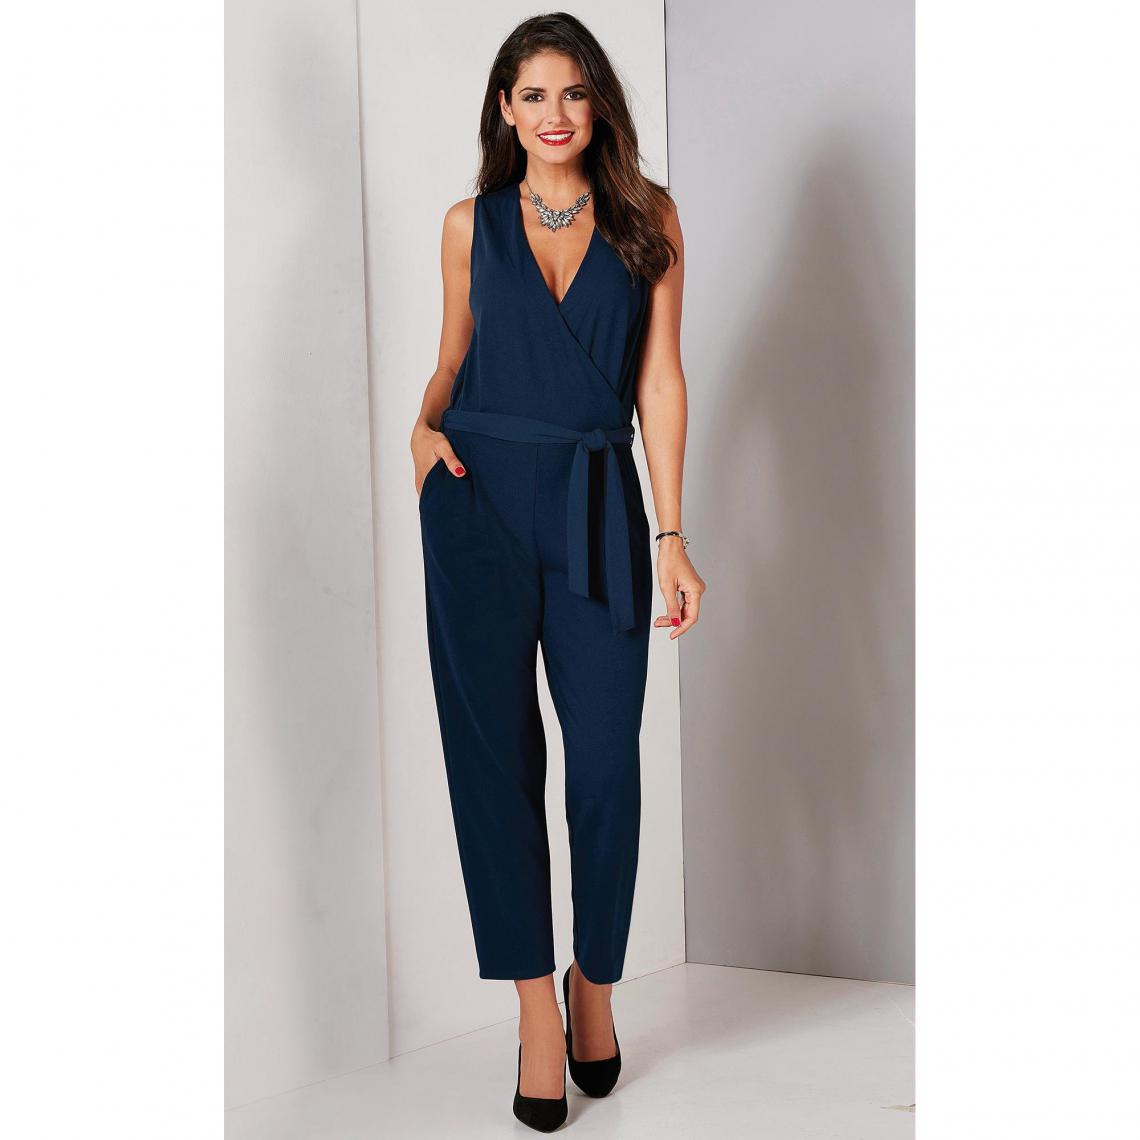 combinaison simple bleu nuit chic